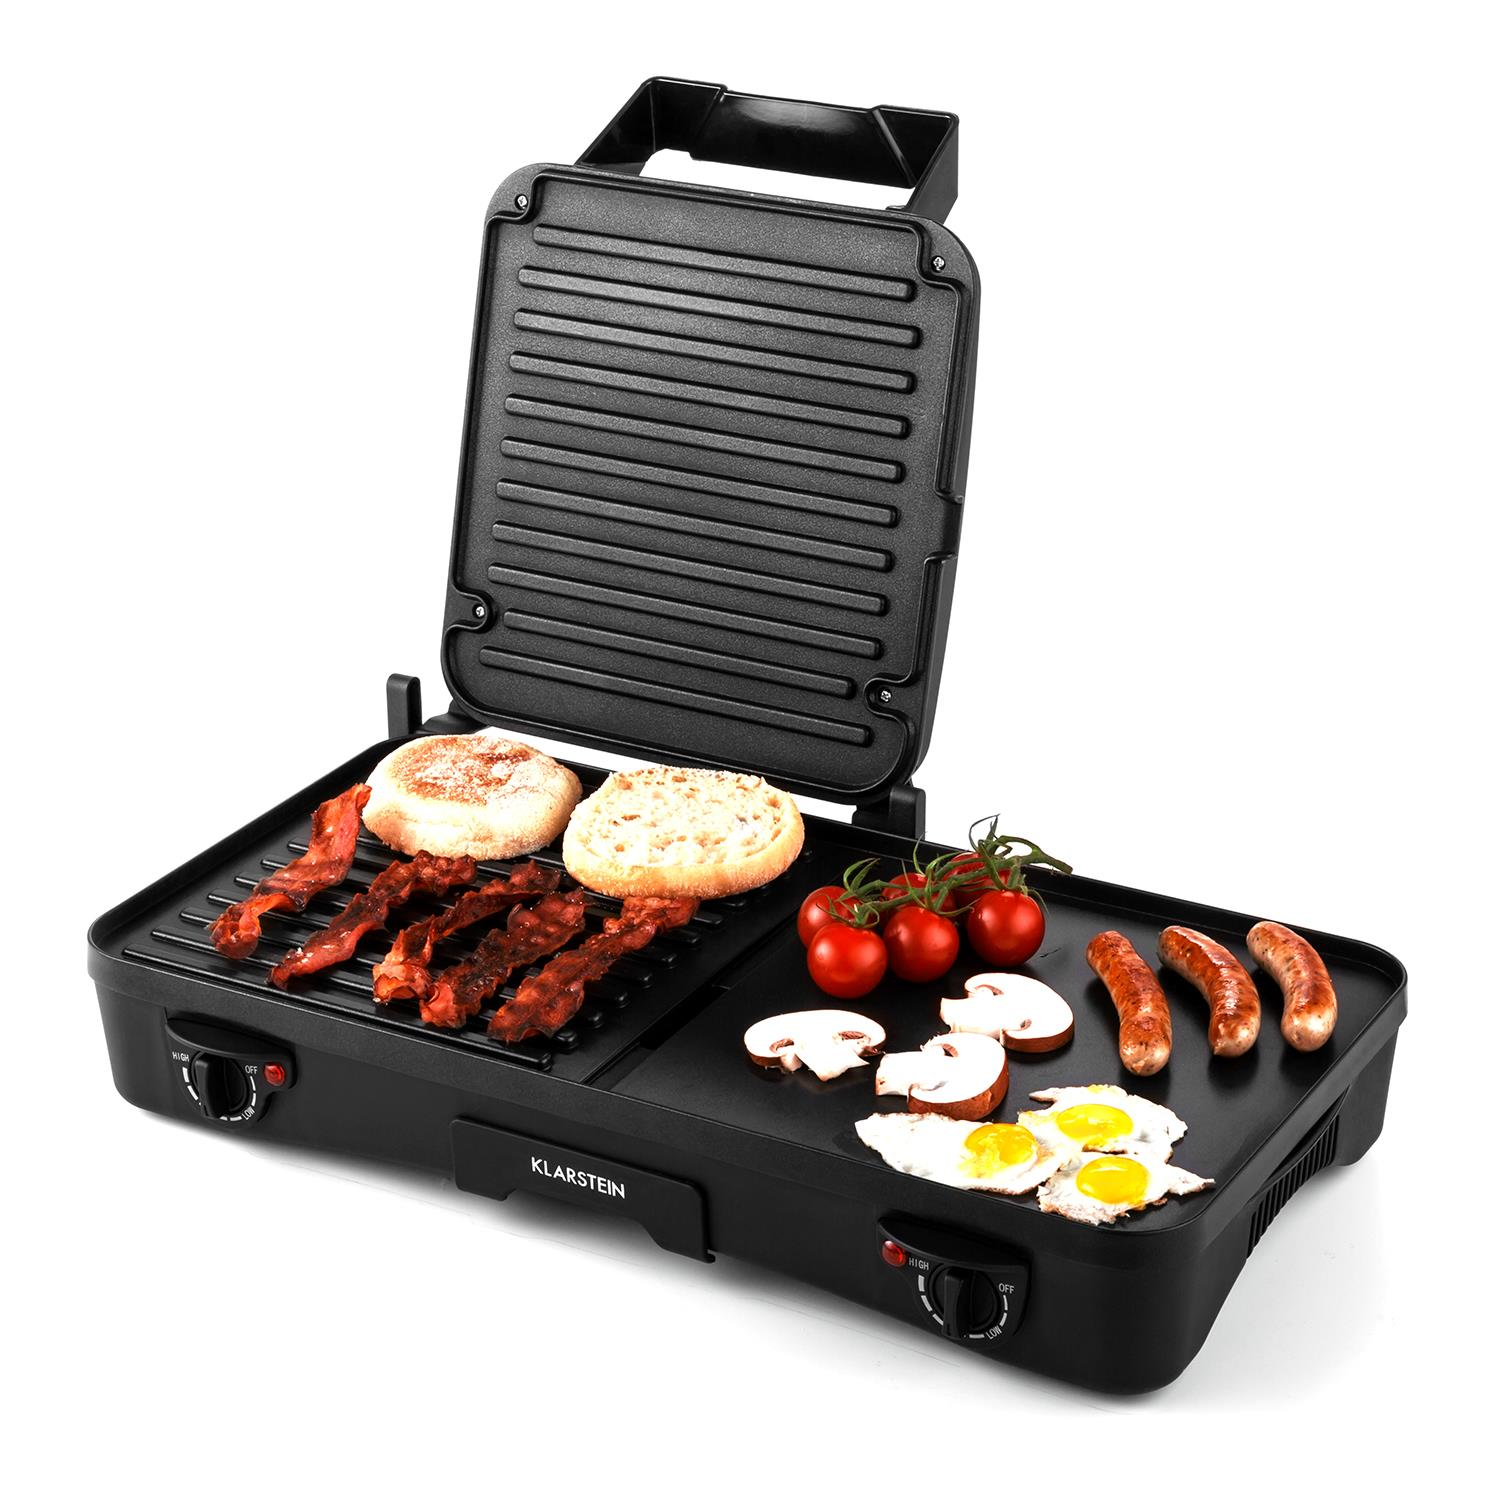 new powerful 1500w indoor grill sandwich toast bbq griddle free p p uk offer ebay. Black Bedroom Furniture Sets. Home Design Ideas